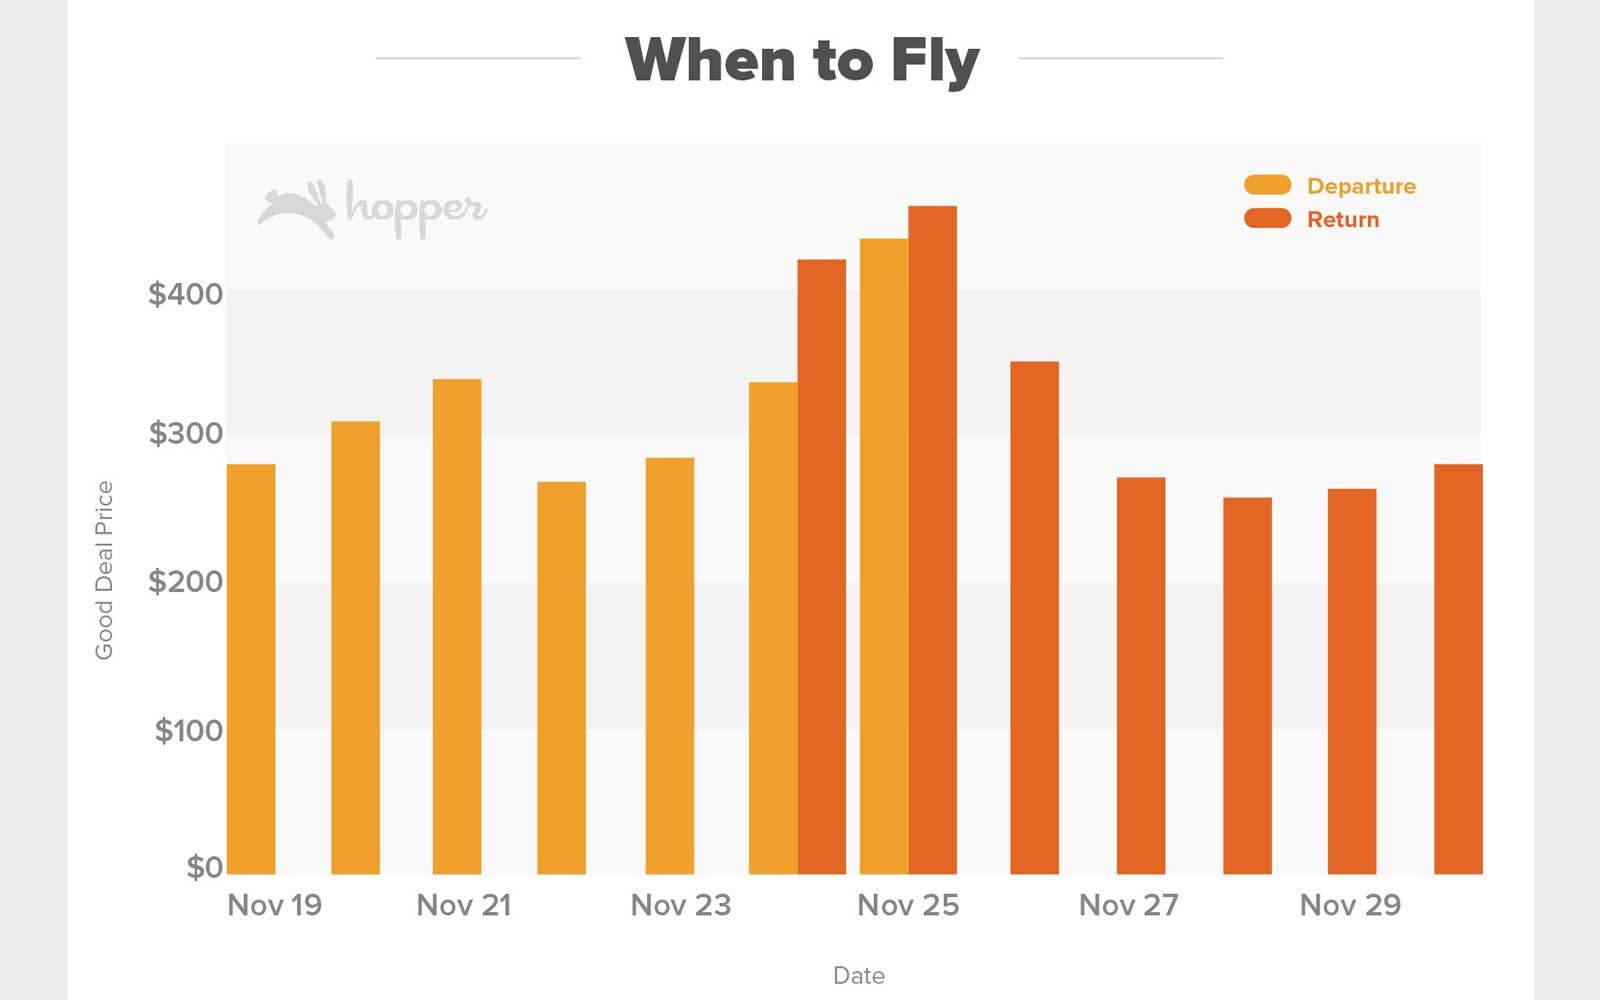 Flying a few days before the Thanksgiving holiday will give you the biggest savings.